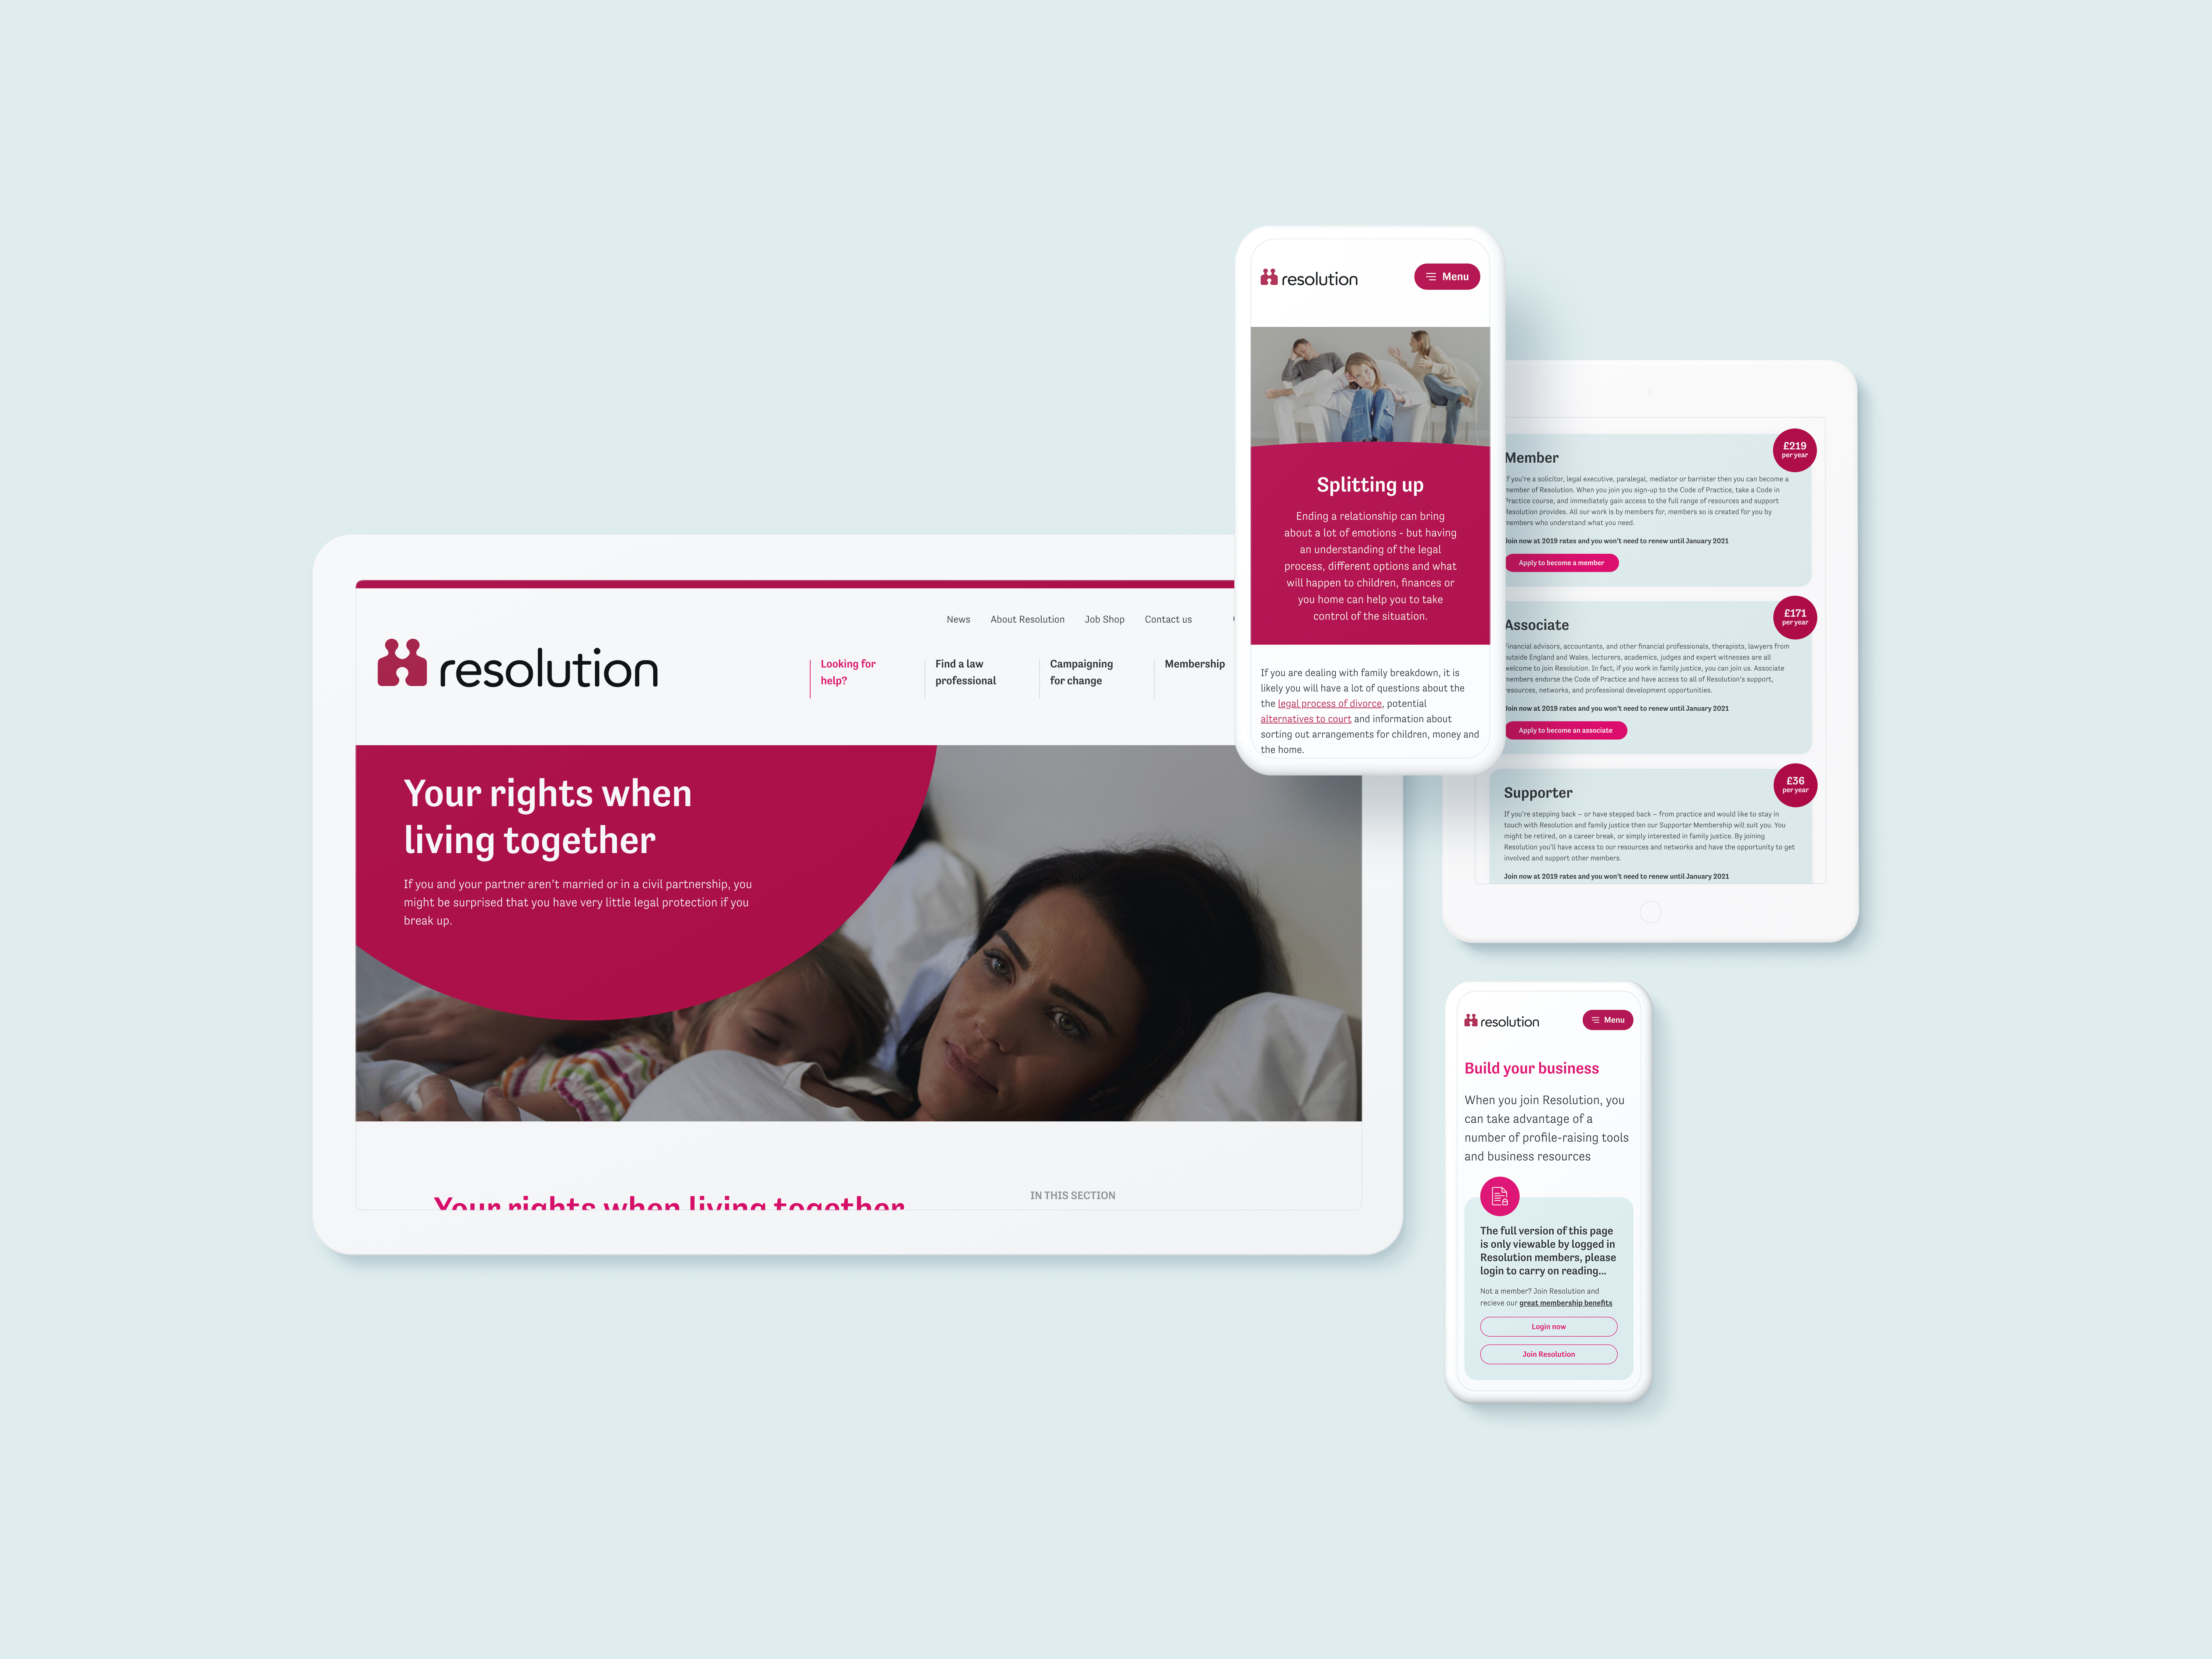 Resolution's new site as it displays on mobile and tablet devices